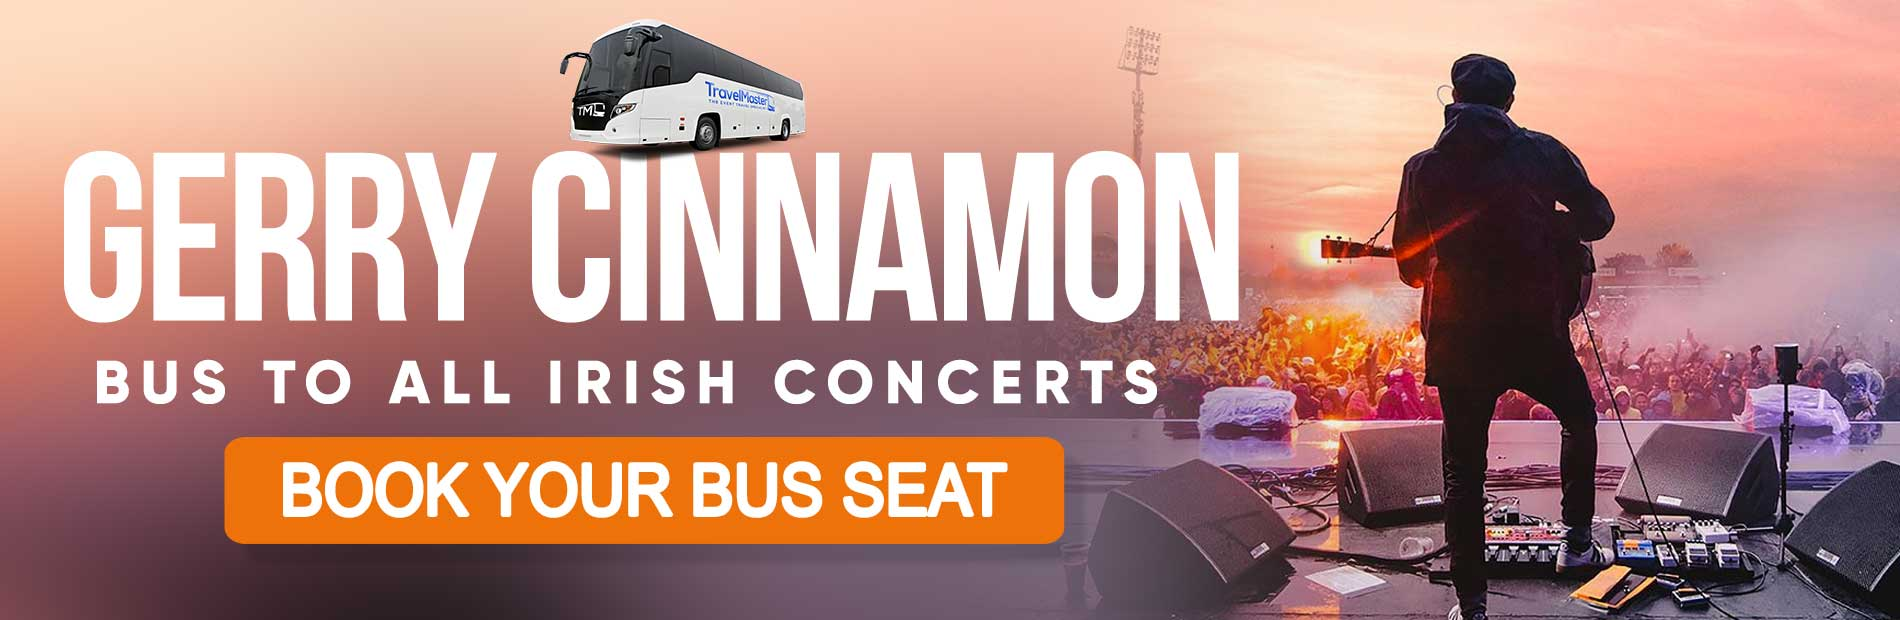 Bus to Gerry Cinnamon Concerts